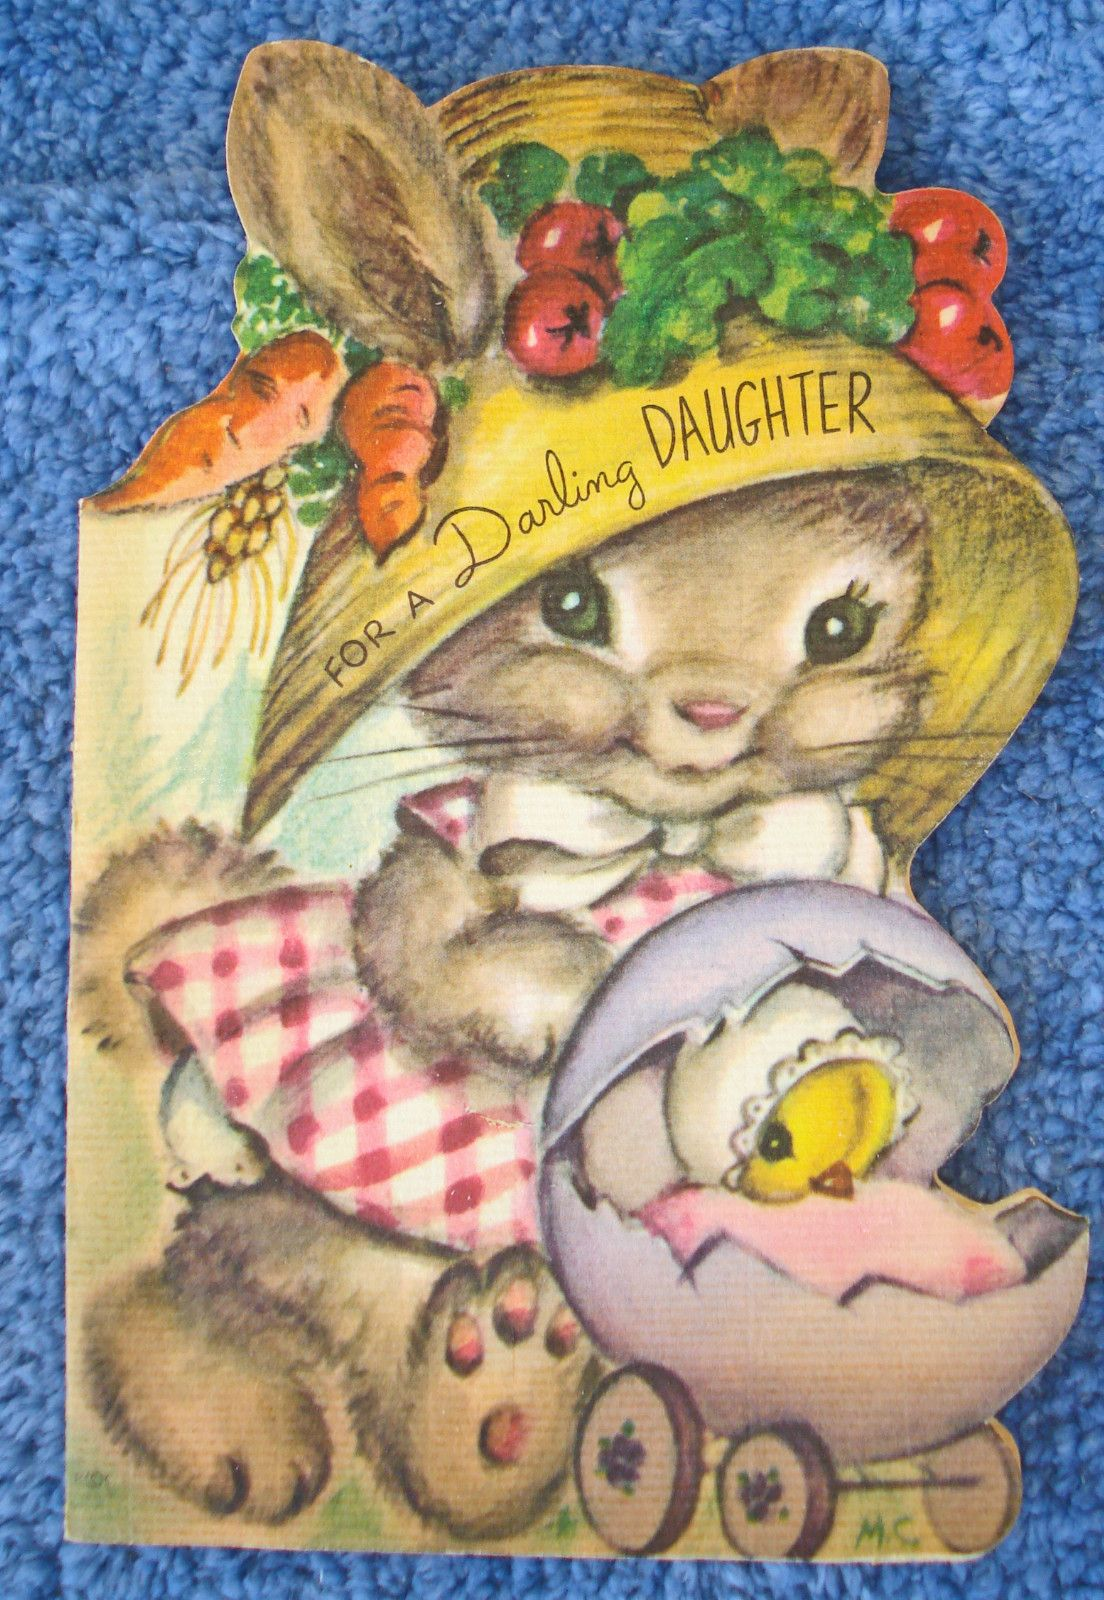 1948 & 1950 VINTAGE RUST CRAFT EASTER CARDS ART MARJORIE COOPER-KITTENS & BUNNY | eBay